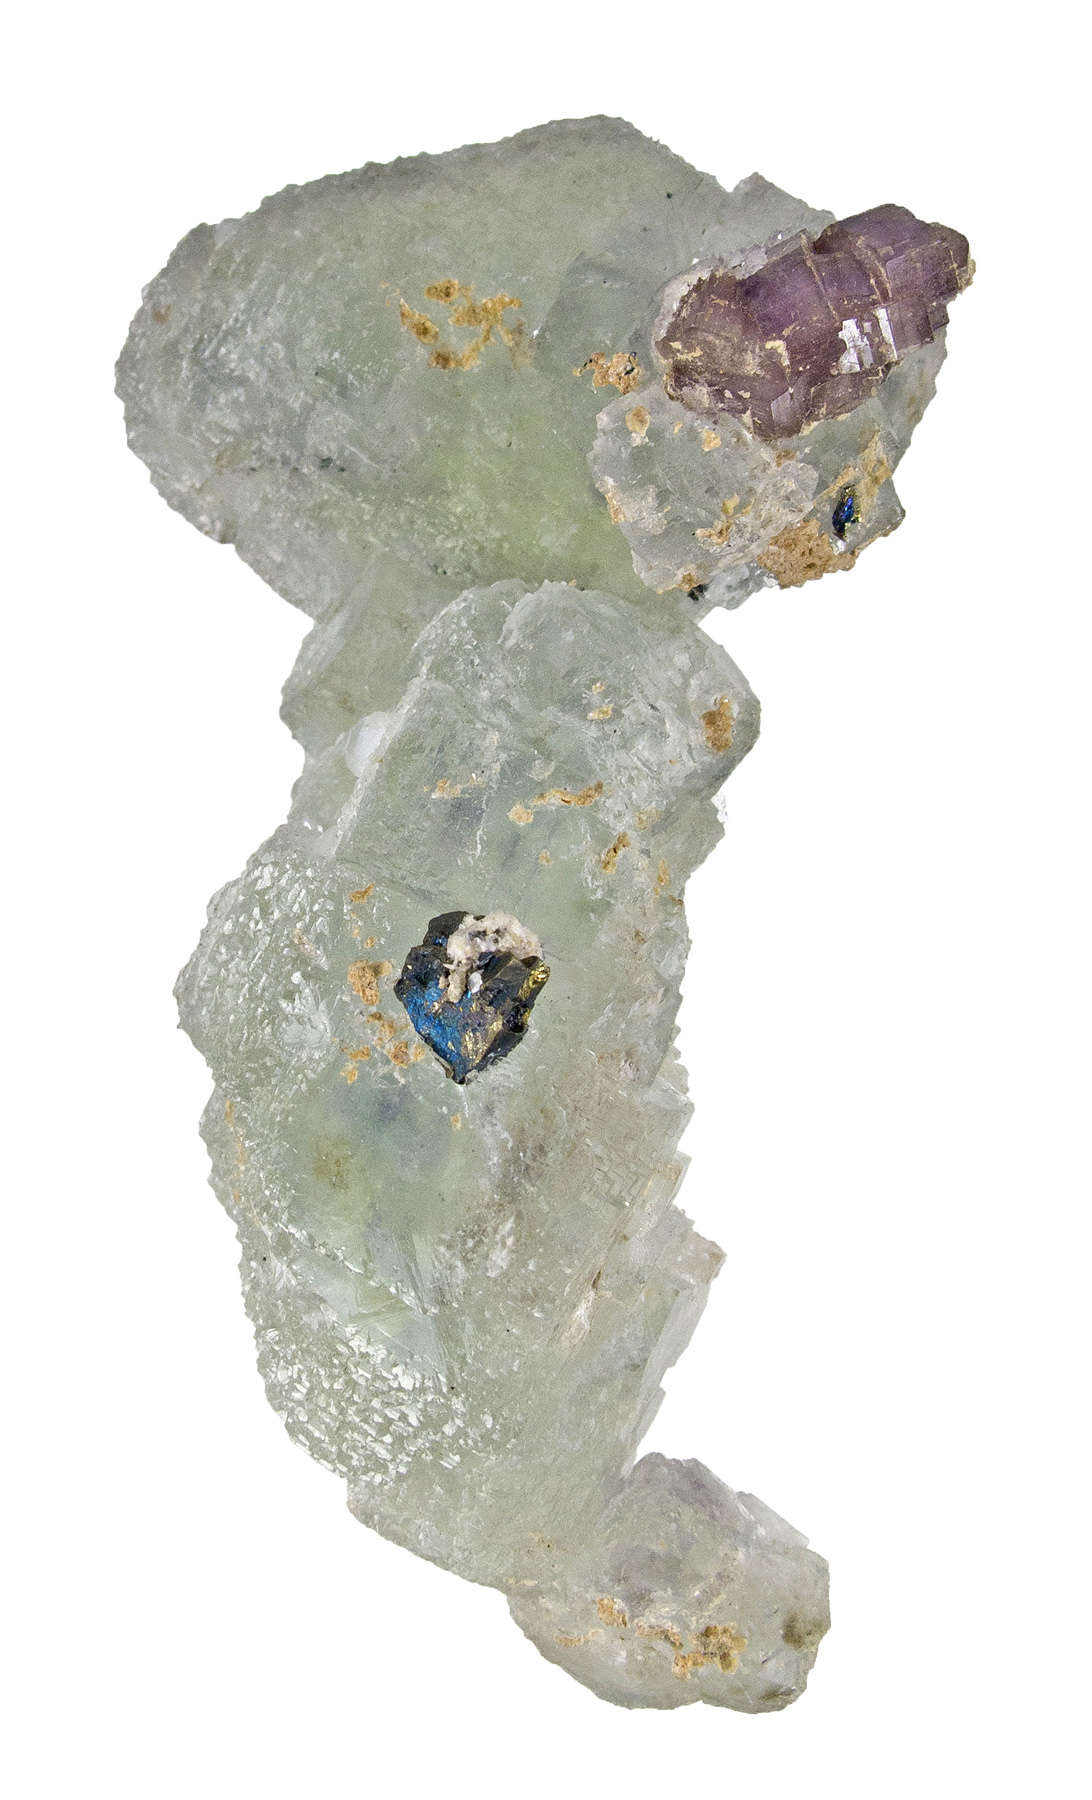 A highly unusual fluorite ANY locality snakelike cluster intergrown